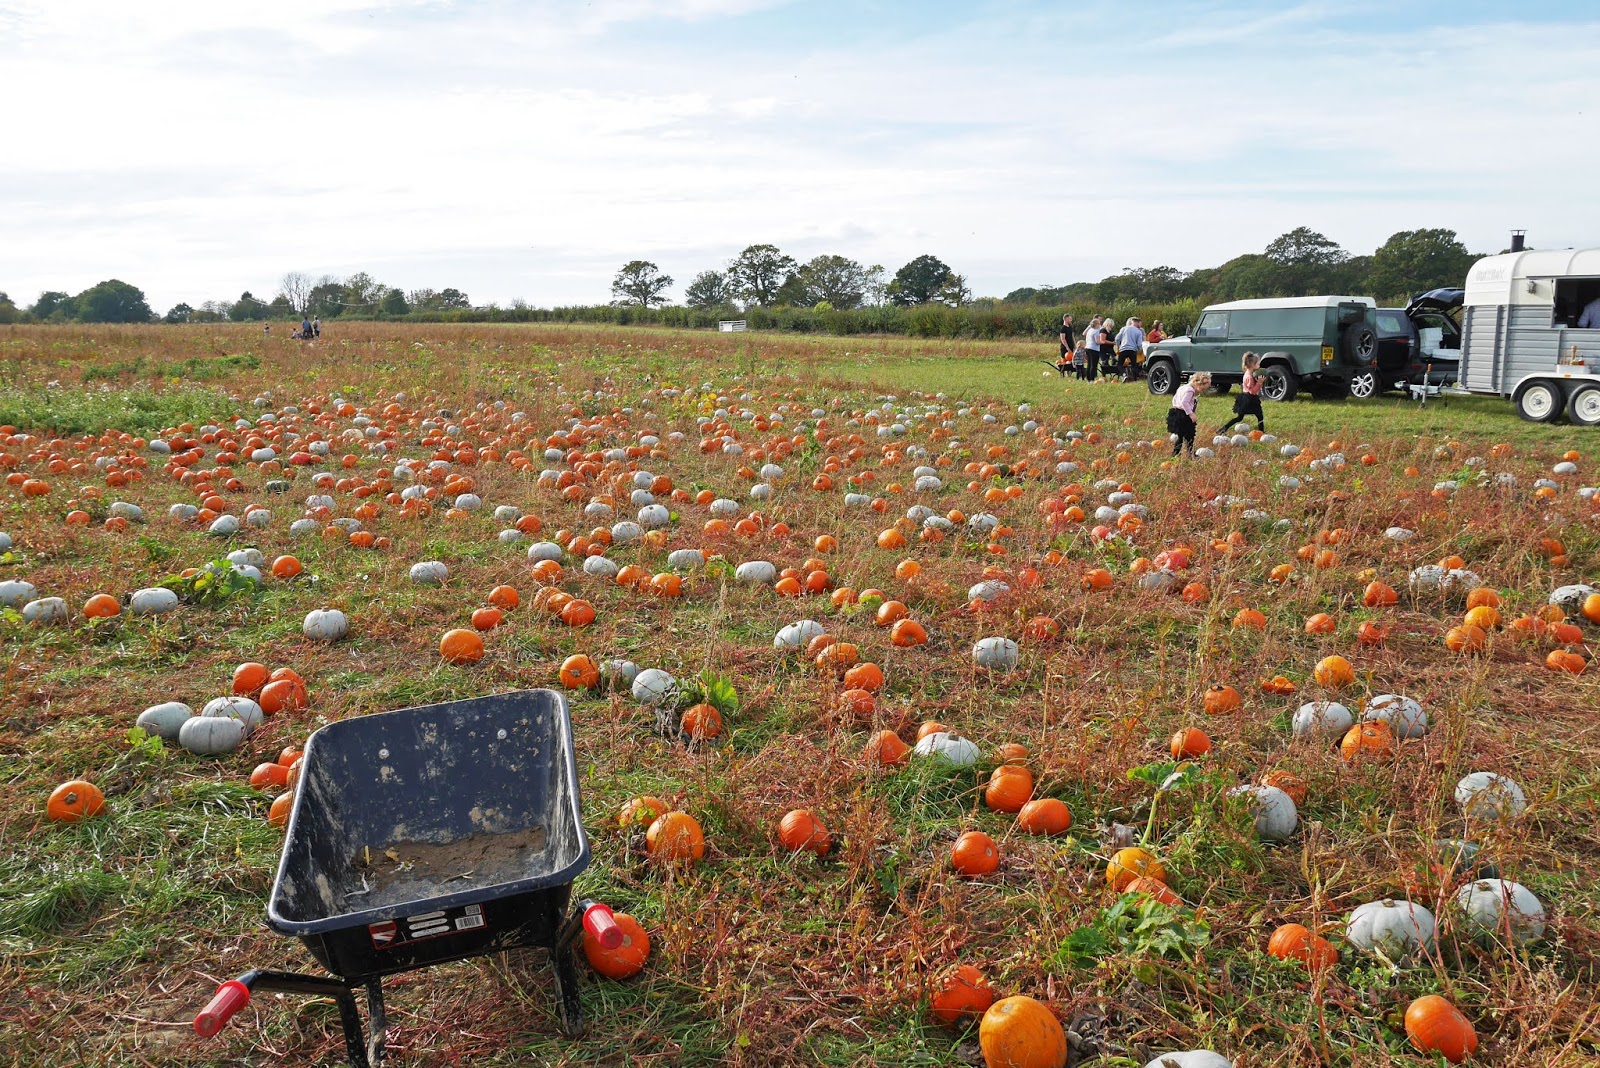 Little pumpkins at the Sevington pumpkin patch, Ashford